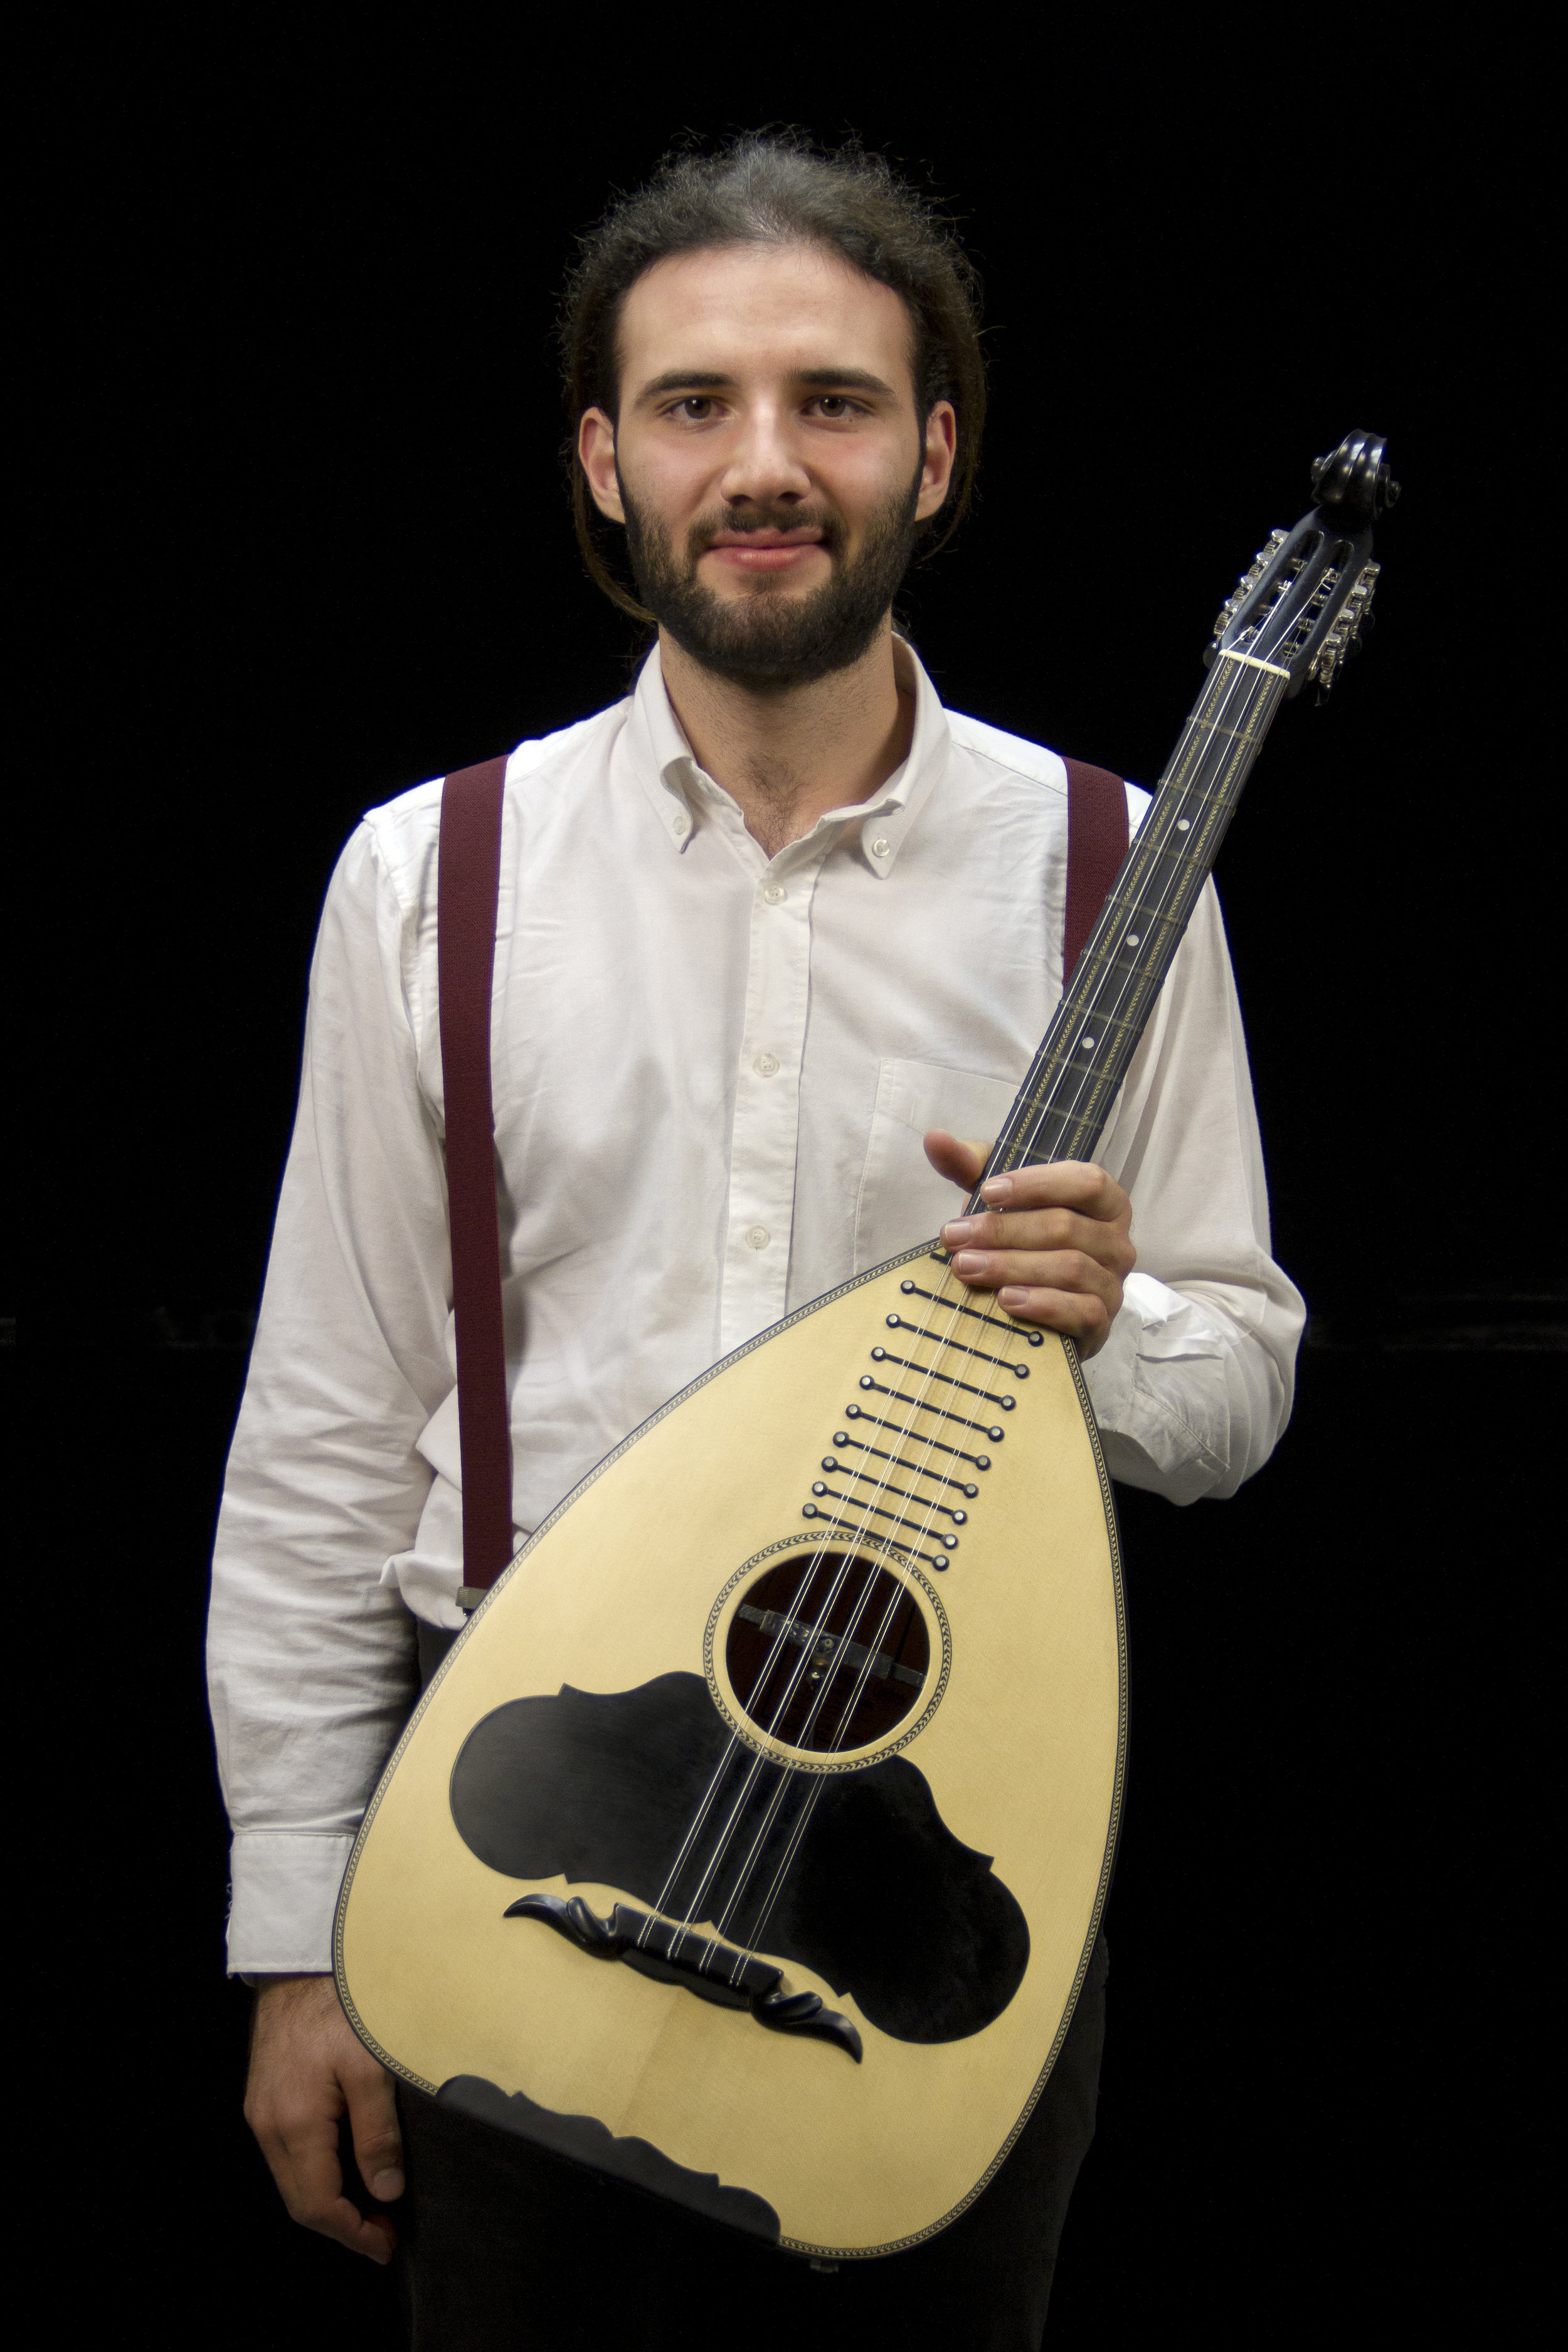 Panagiotis Stathakis - Panagiotis Stathakis was born in 1998 in Athens. At age 13 he started lute lessons at the Ilion Music School, from which he graduated. At the age of 15, he began lute lessons to Christos Zotos. Also in 2014 he attended a seminar of traditional music with a choice of the lute in the summer seminars: